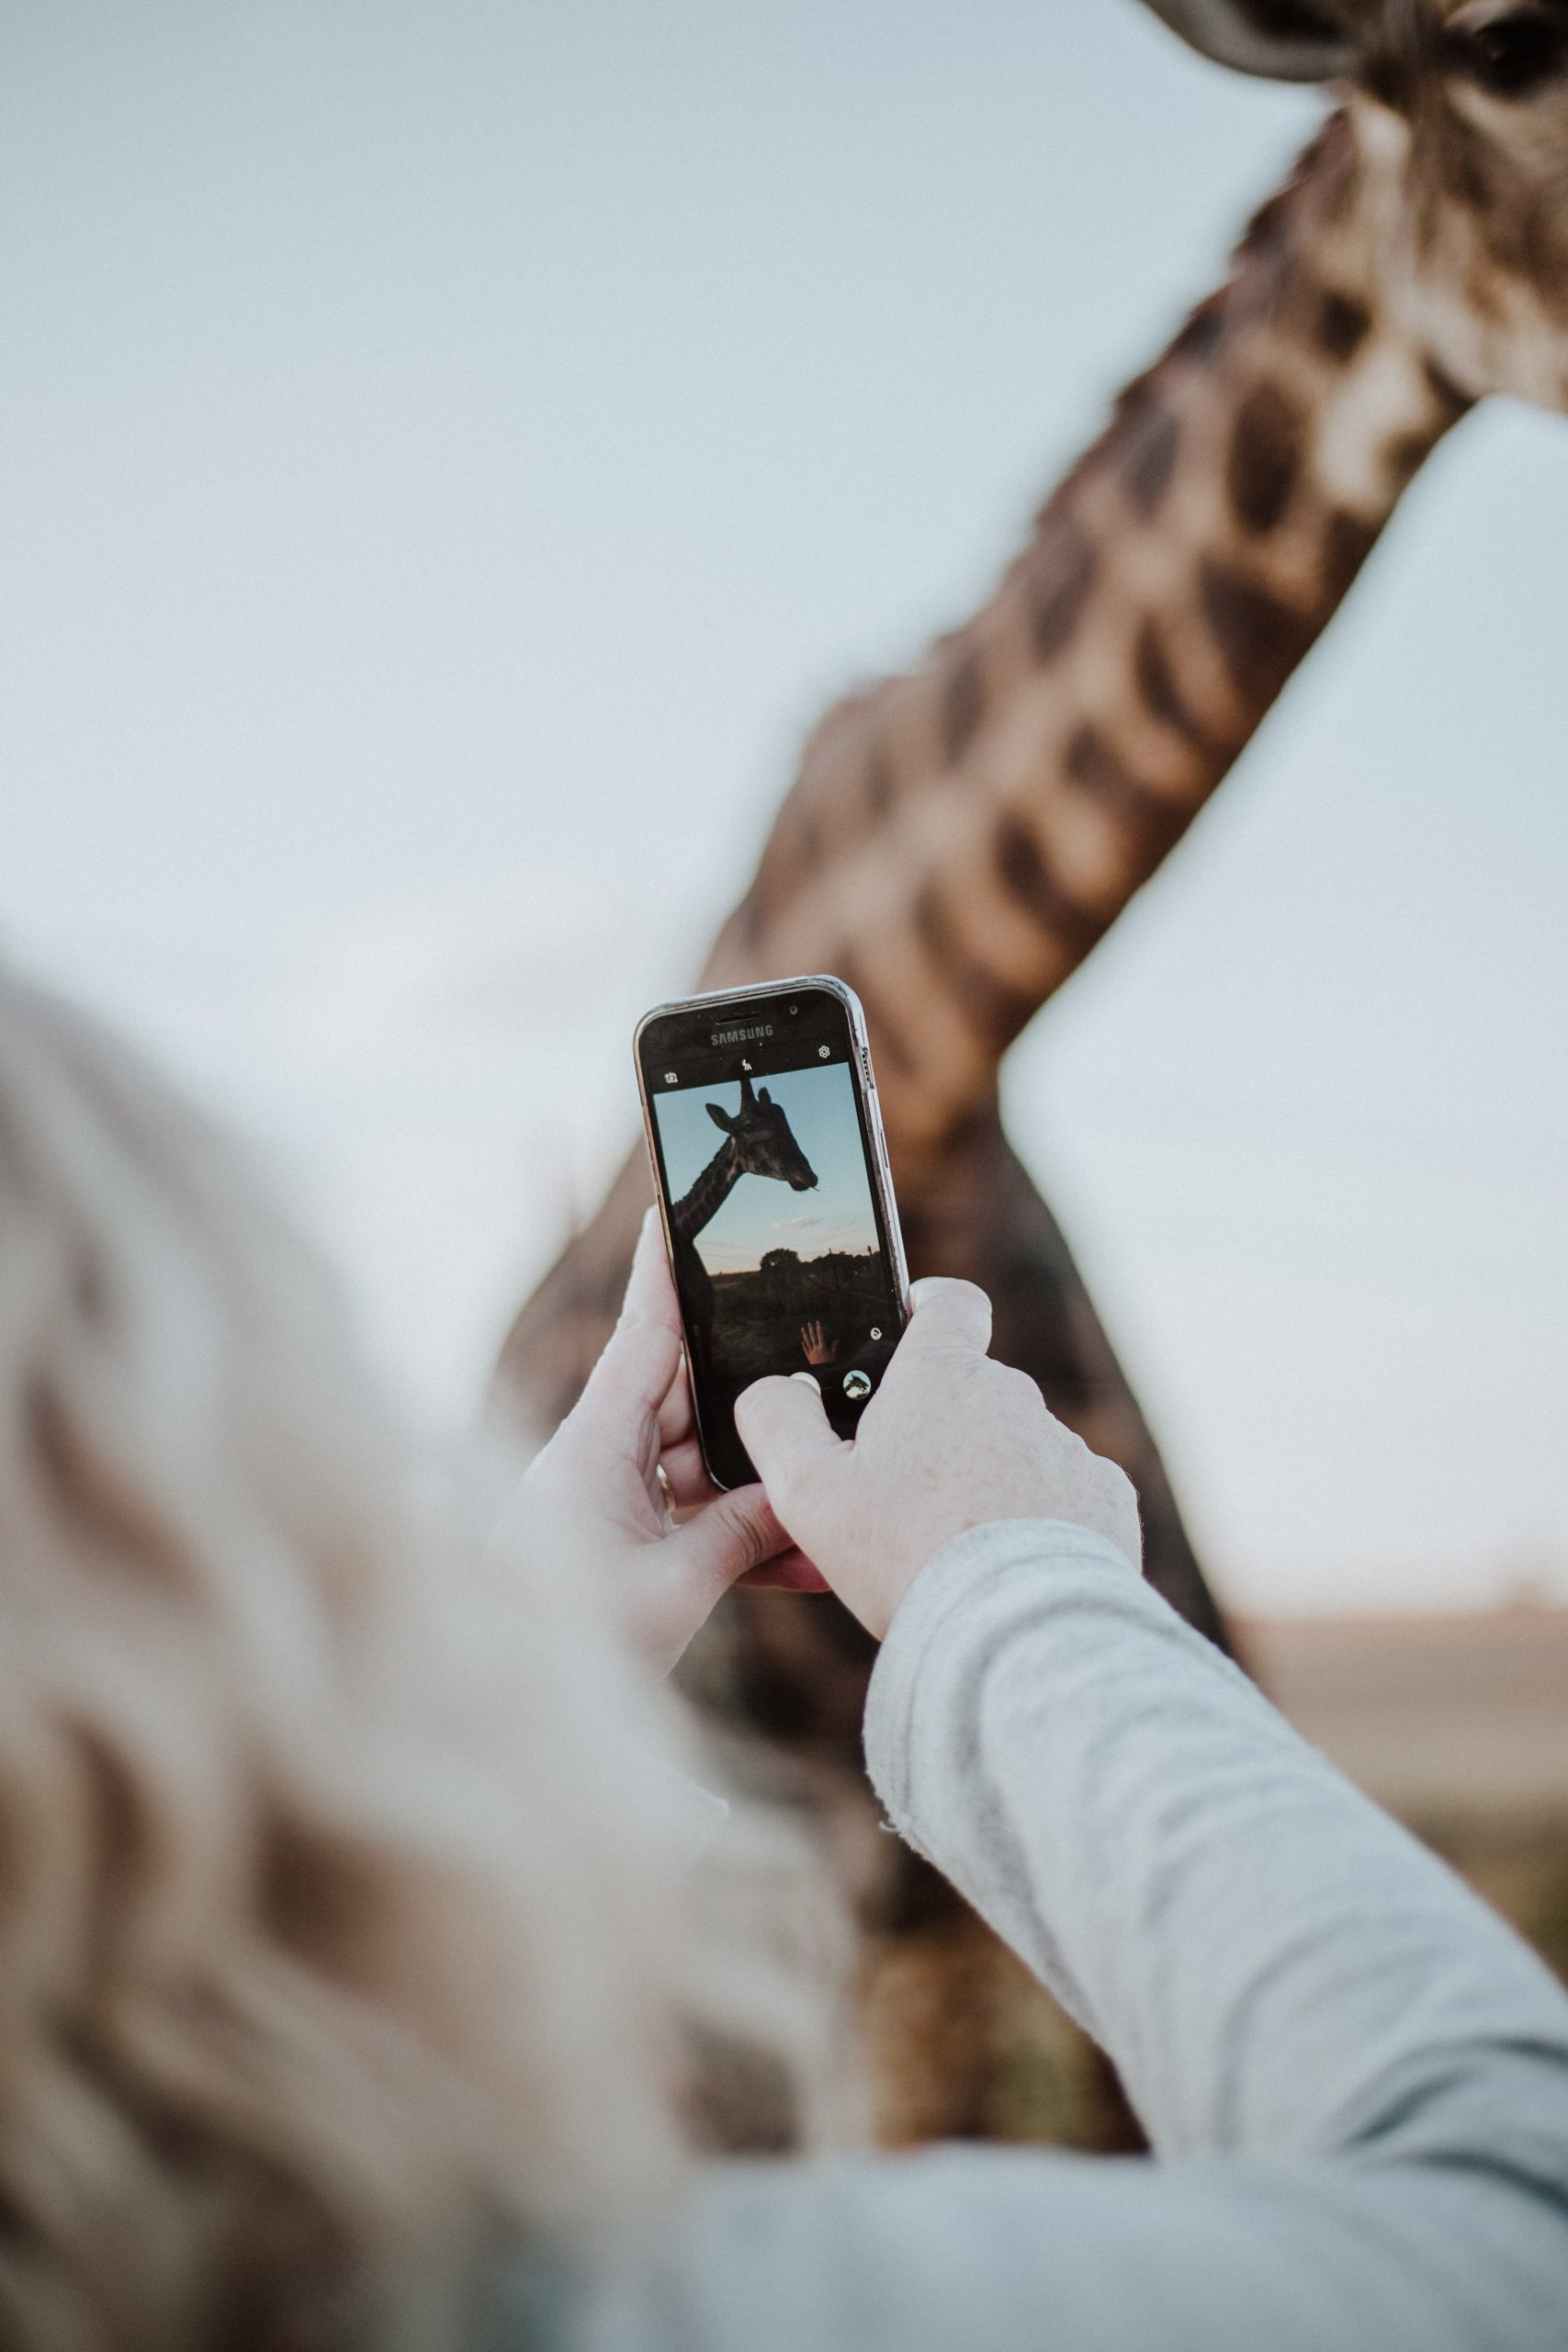 A white woman with blonde hair holds her smart phone up to take a picture of the giraffe standing directly in front of her.